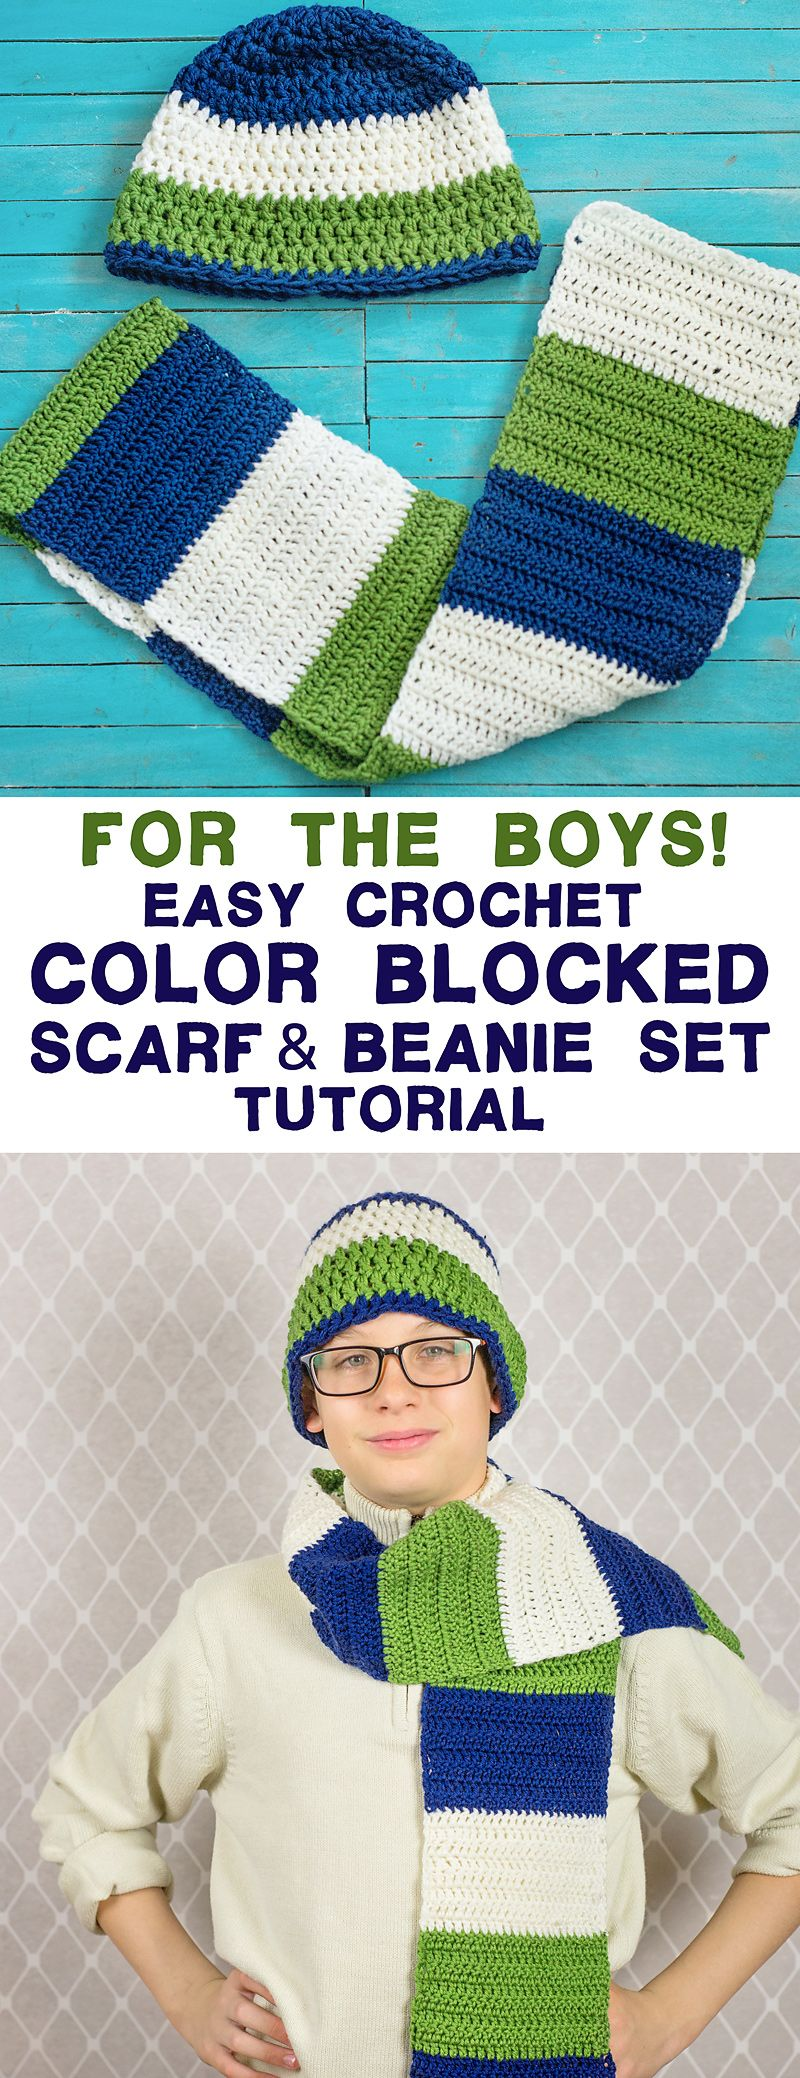 This easy crochet color blocked scarf and beanie set is a great this easy crochet color blocked scarf and beanie set is a great crochet project for boys bankloansurffo Image collections